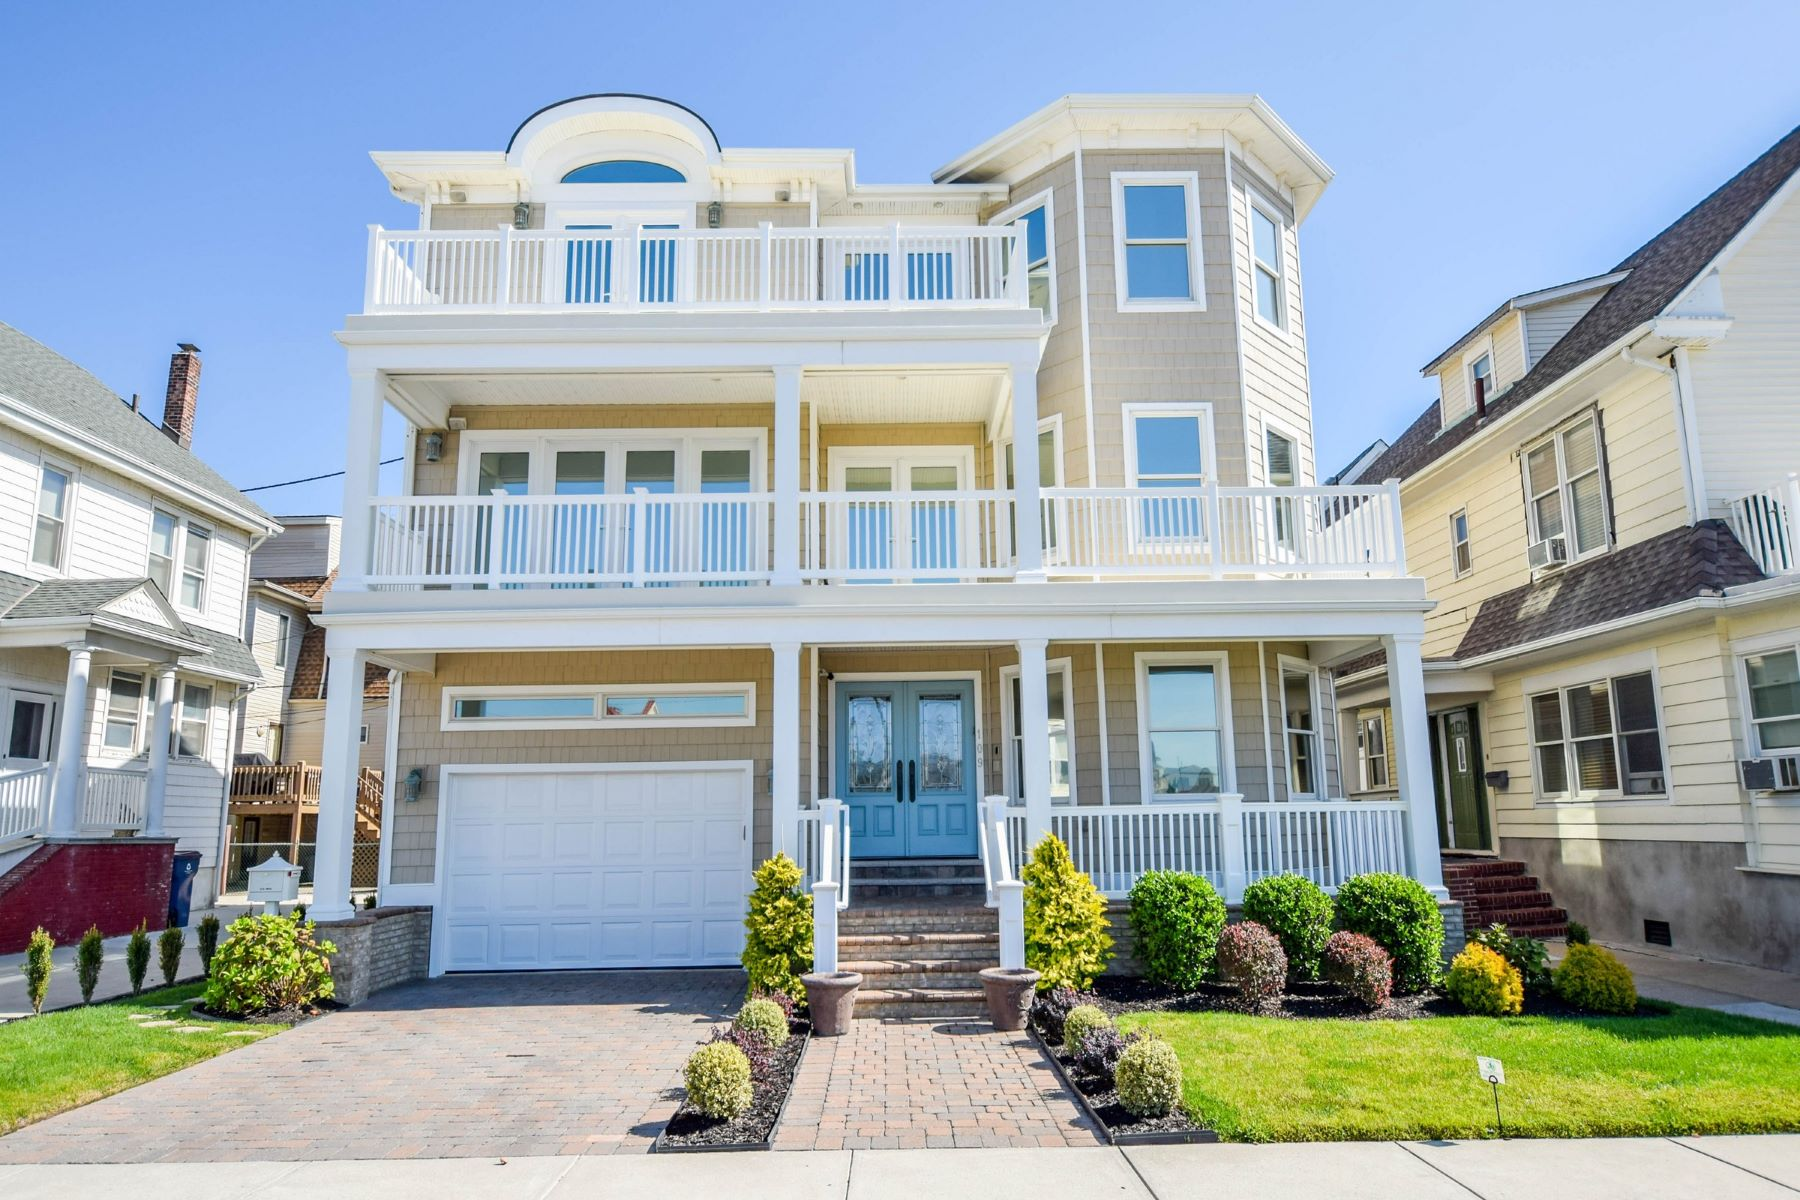 Single Family Homes for Sale at 109 S. Newport 109 S Newport Ave Ventnor, New Jersey 08402 United States